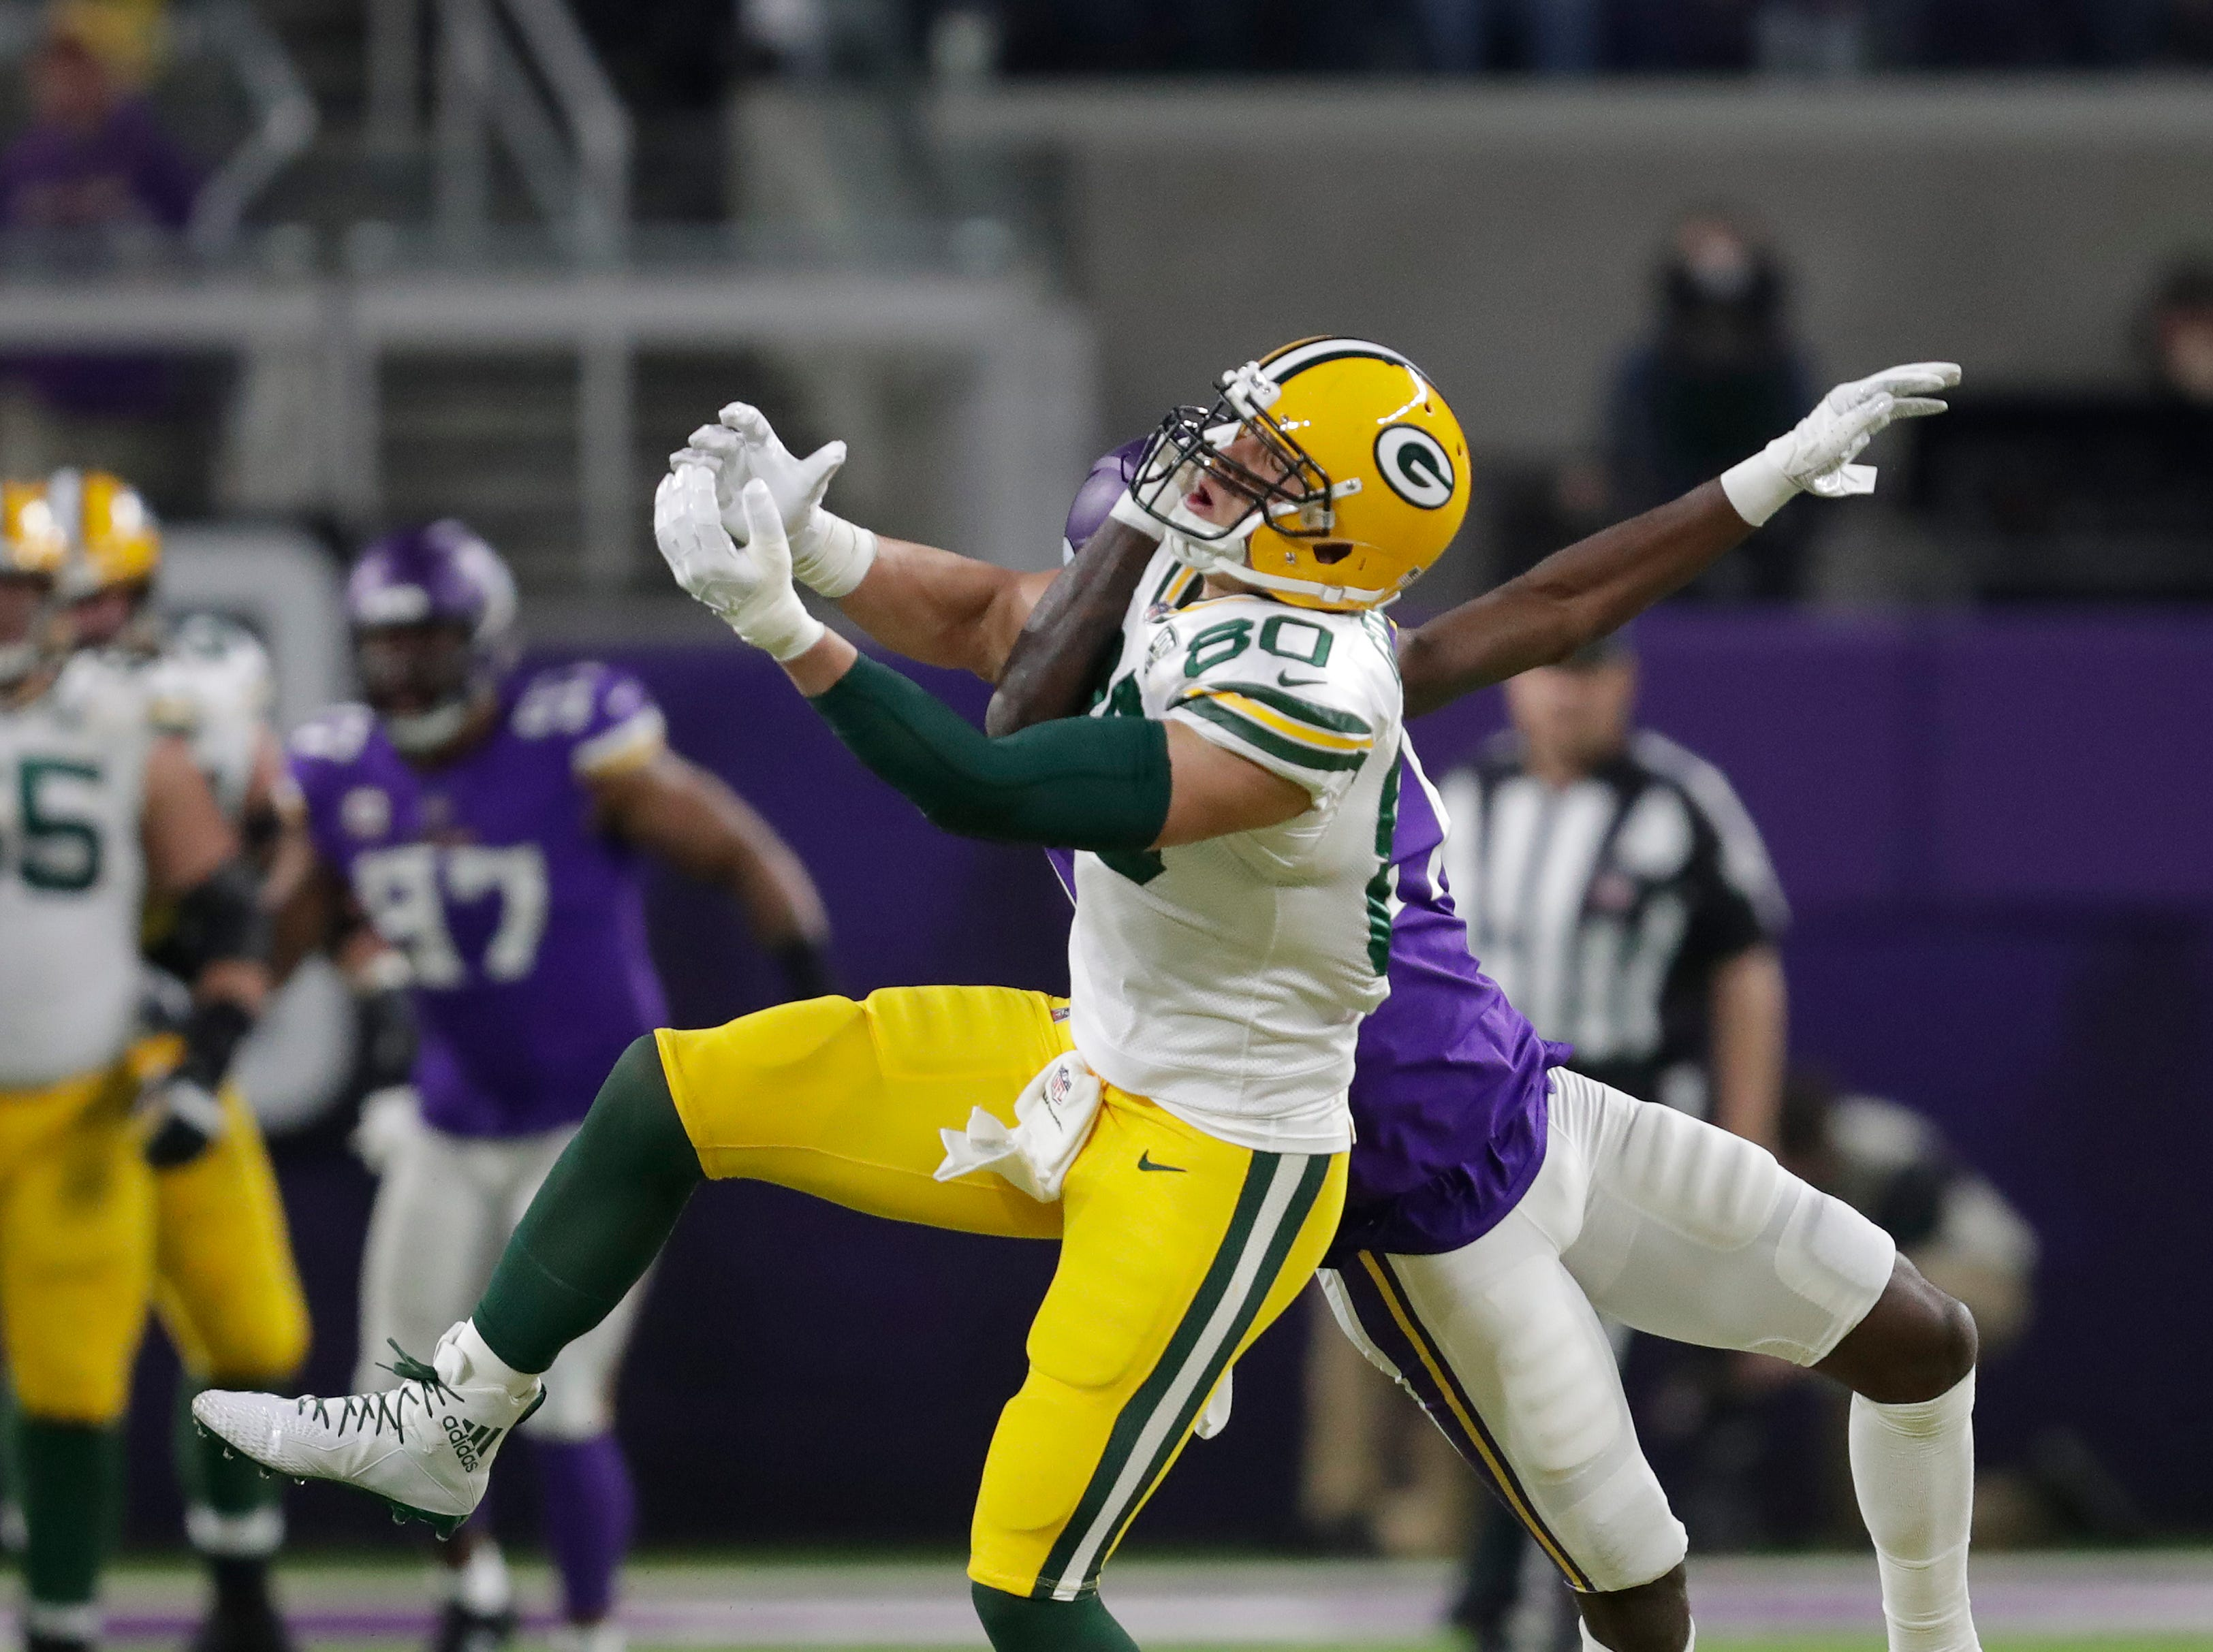 Green Bay Packers tight end Jimmy Graham (80) can't make the catch against Minnesota Vikings' Jayron Kearse (27) in the first half during their football game Sunday, November 25, 2018, at U.S. Bank Stadium in Minneapolis, Minn. 